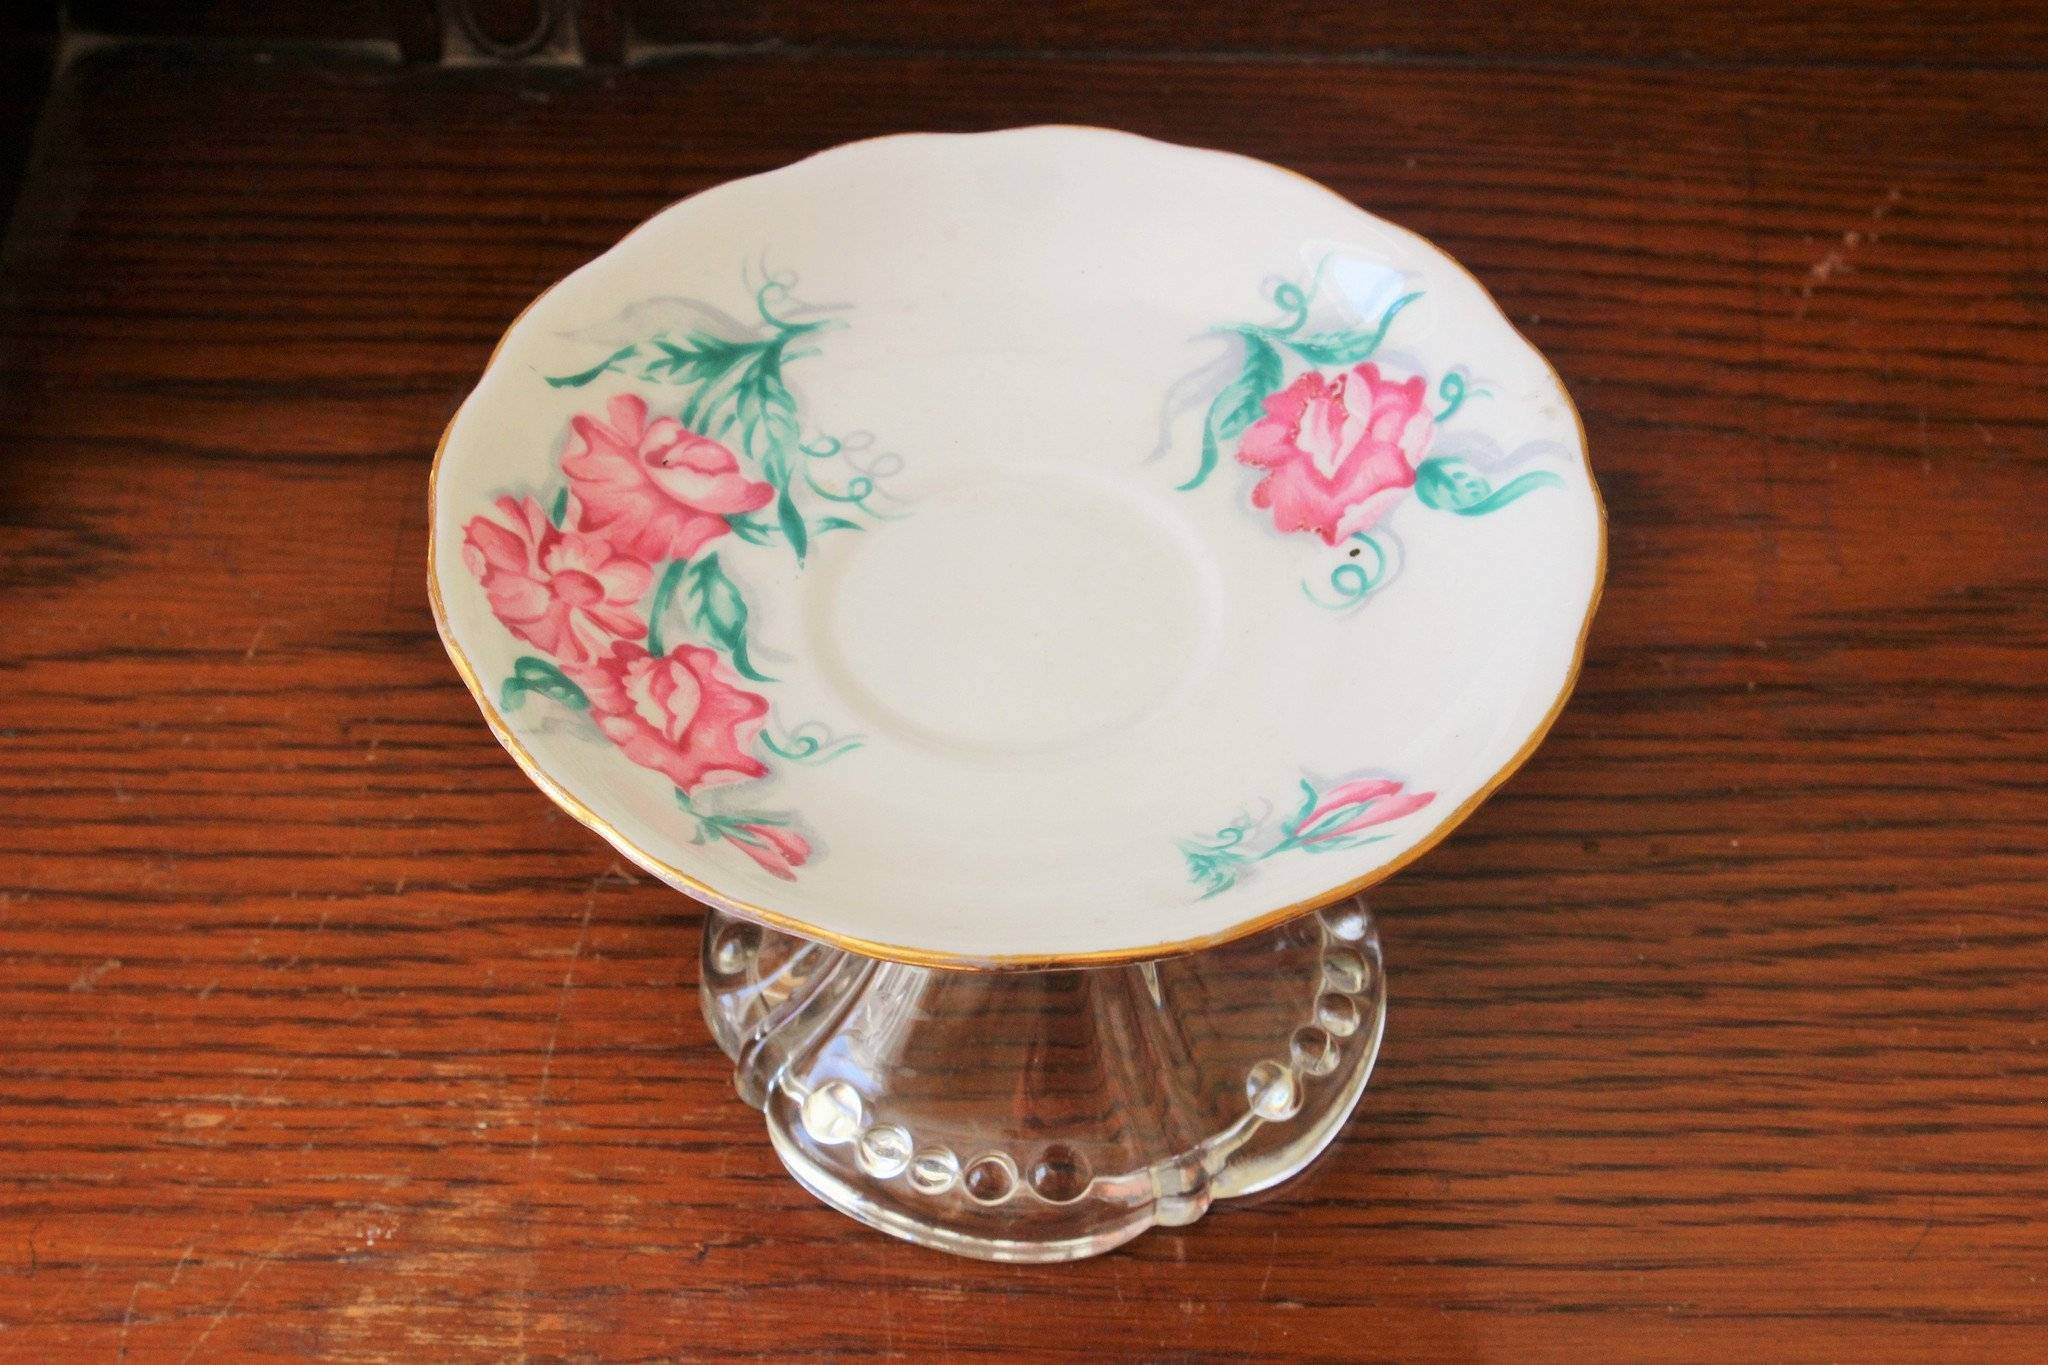 Image of Vintage Upcycled Cupcake Plate, Soap Dish, Etc.